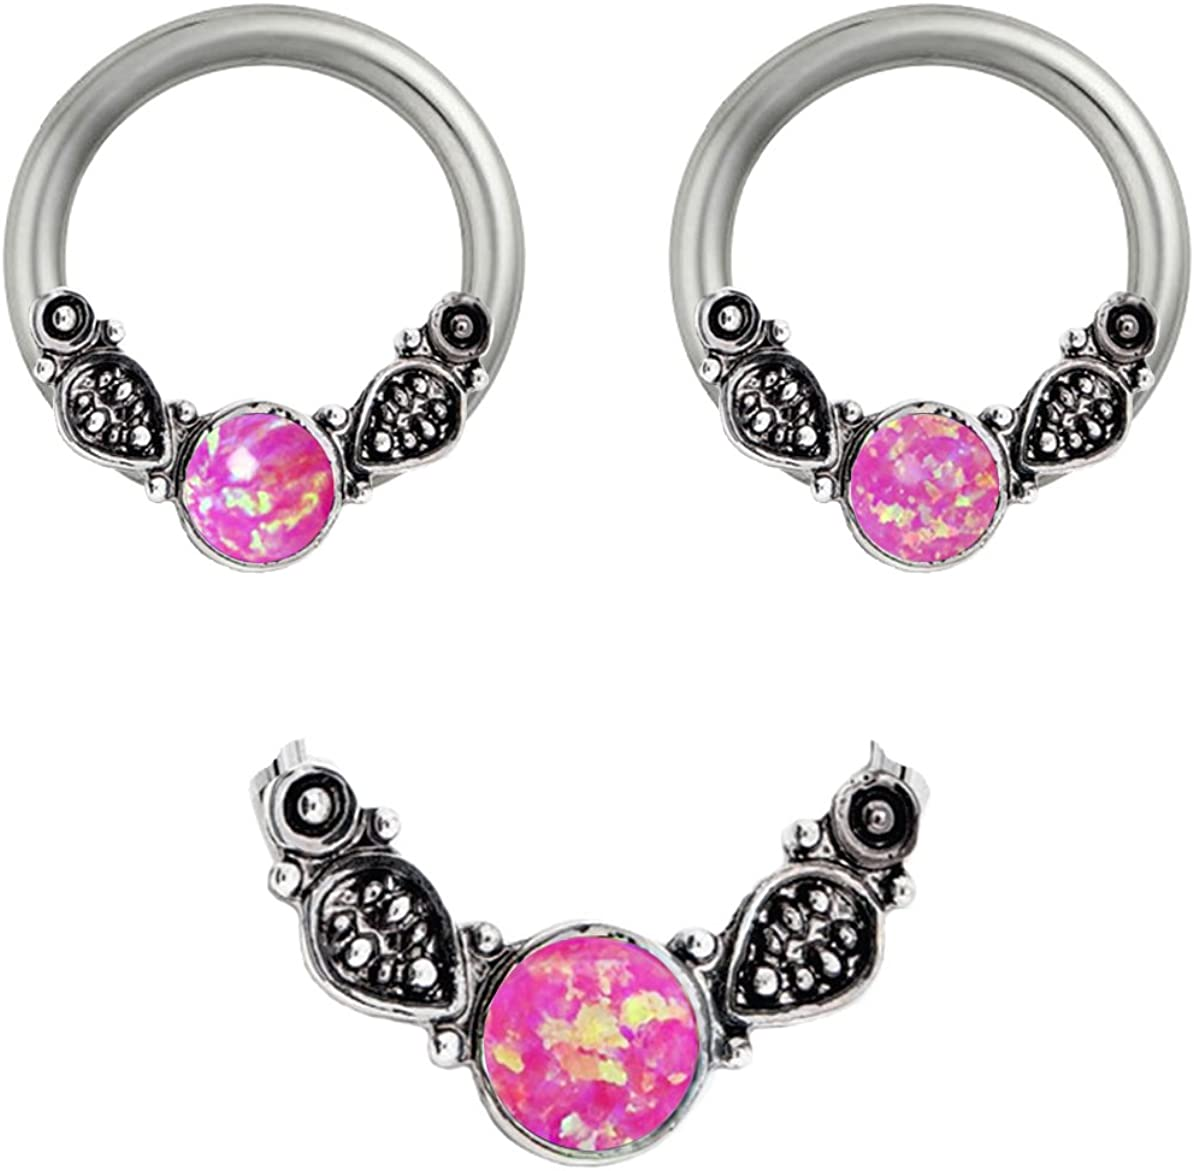 playful piercings Pair of Synthetic Hot Pink Fire Opal Tribal Leafs Captive Ring Lip, Belly, Nipple, Cartilage, Tragus, Septum, Nose, Earring Hoop 10g